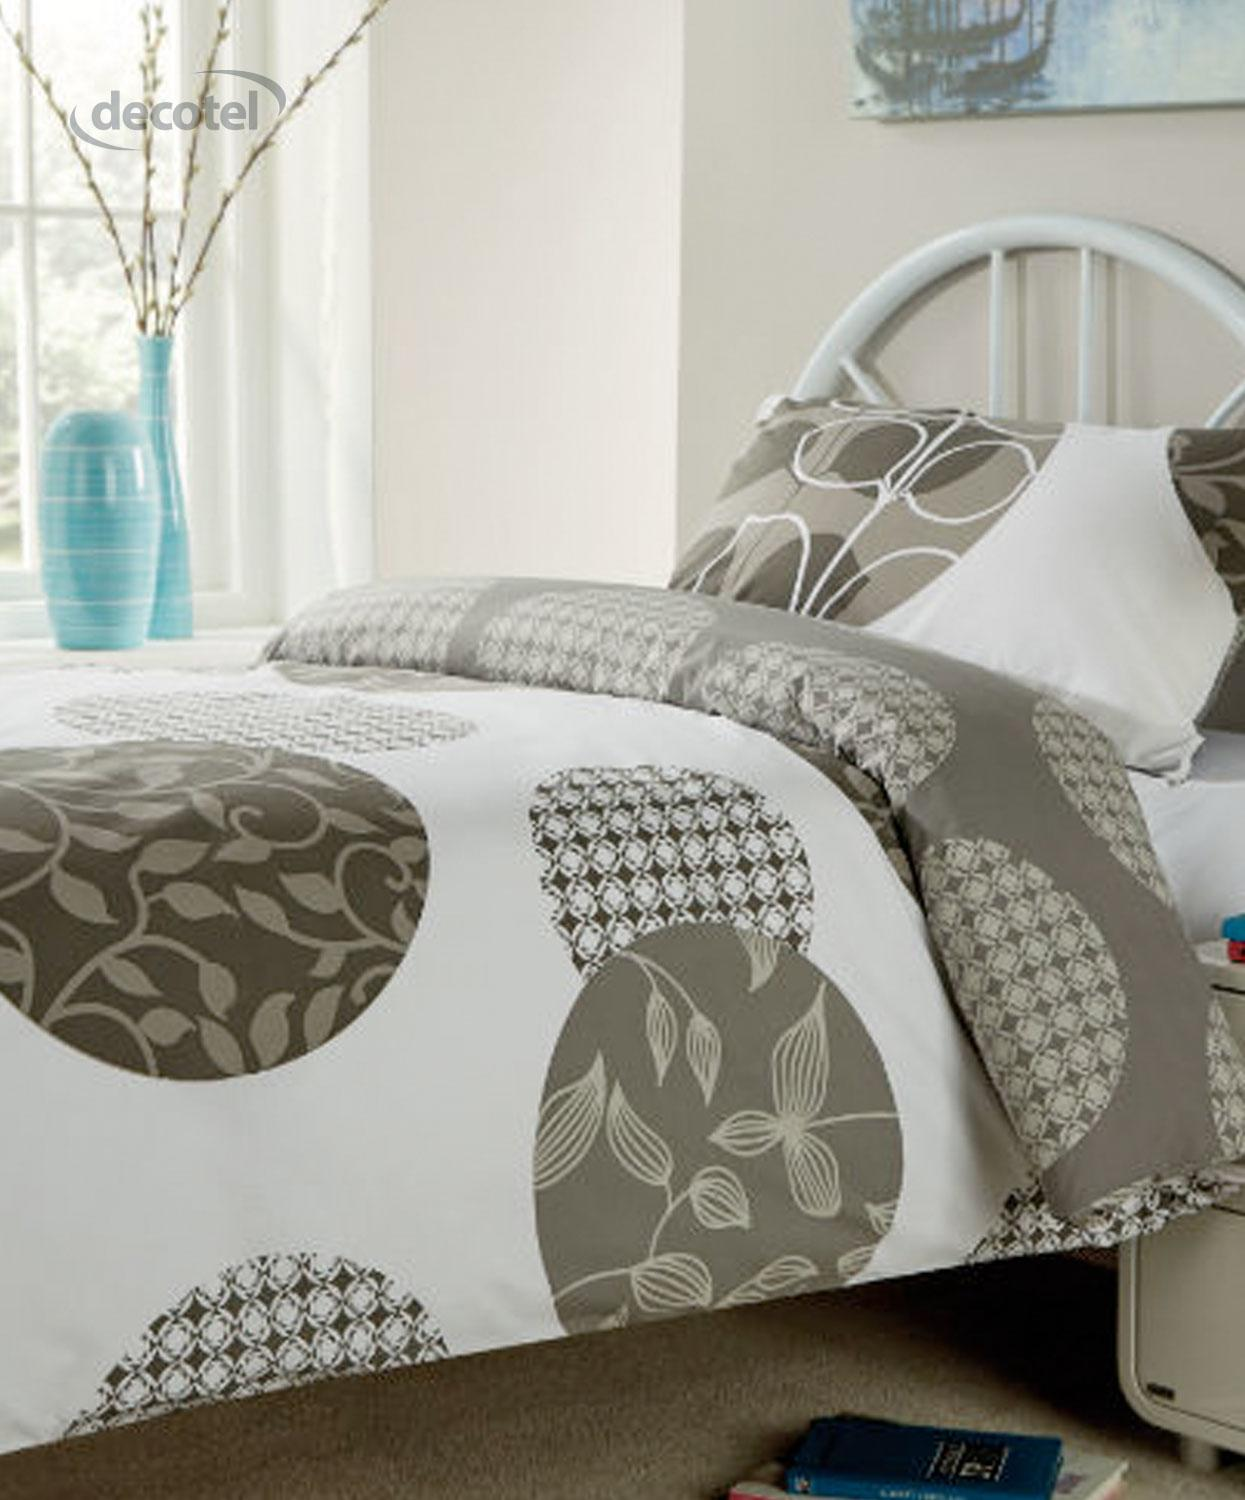 Woodland pillow cases in grey